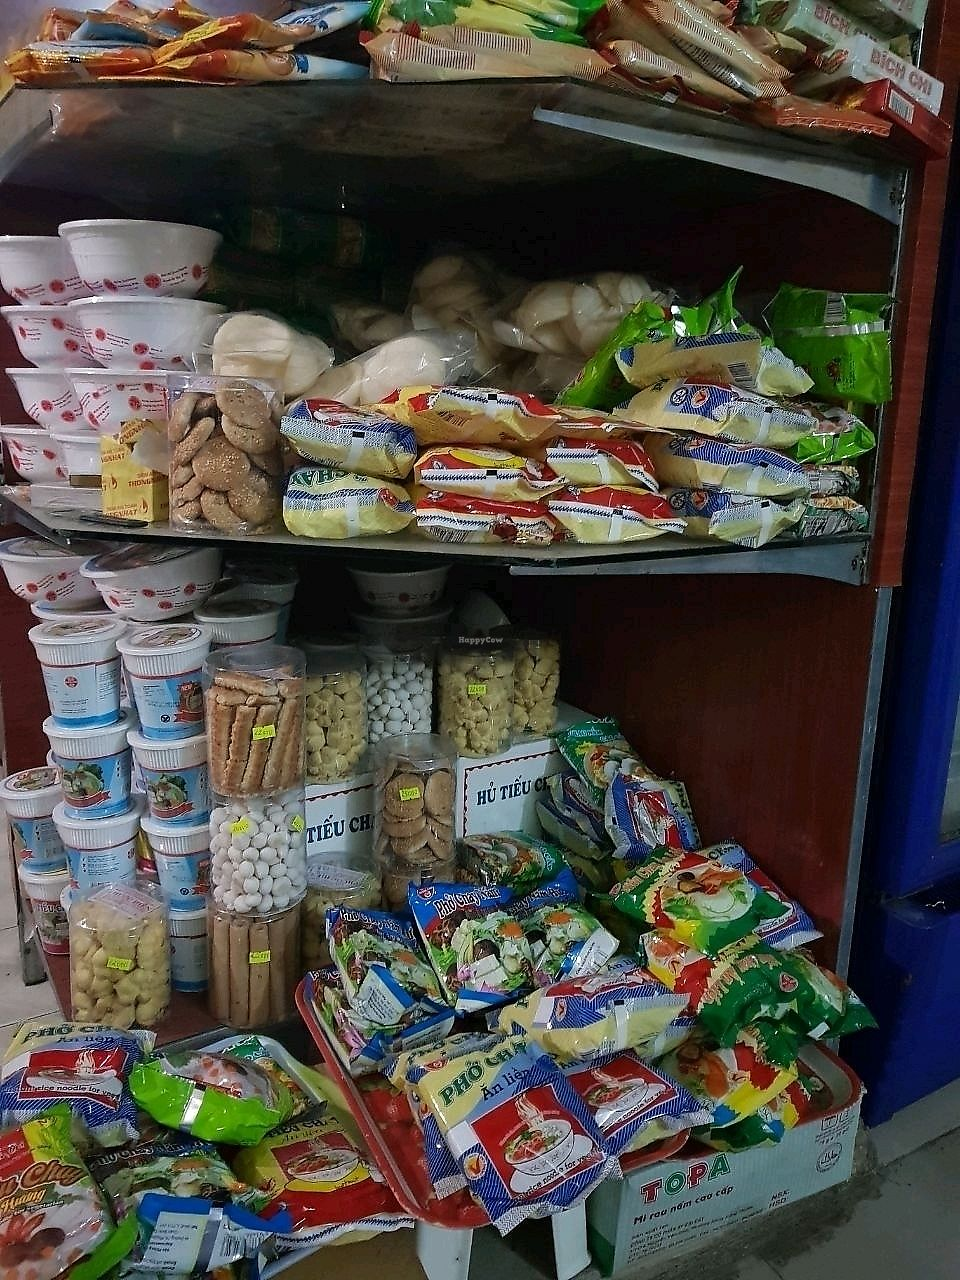 """Photo of Loving Hut - Bien Tinh Thuong  by <a href=""""/members/profile/EnricoVegan"""">EnricoVegan</a> <br/>instant noodles <br/> December 21, 2017  - <a href='/contact/abuse/image/36503/337690'>Report</a>"""